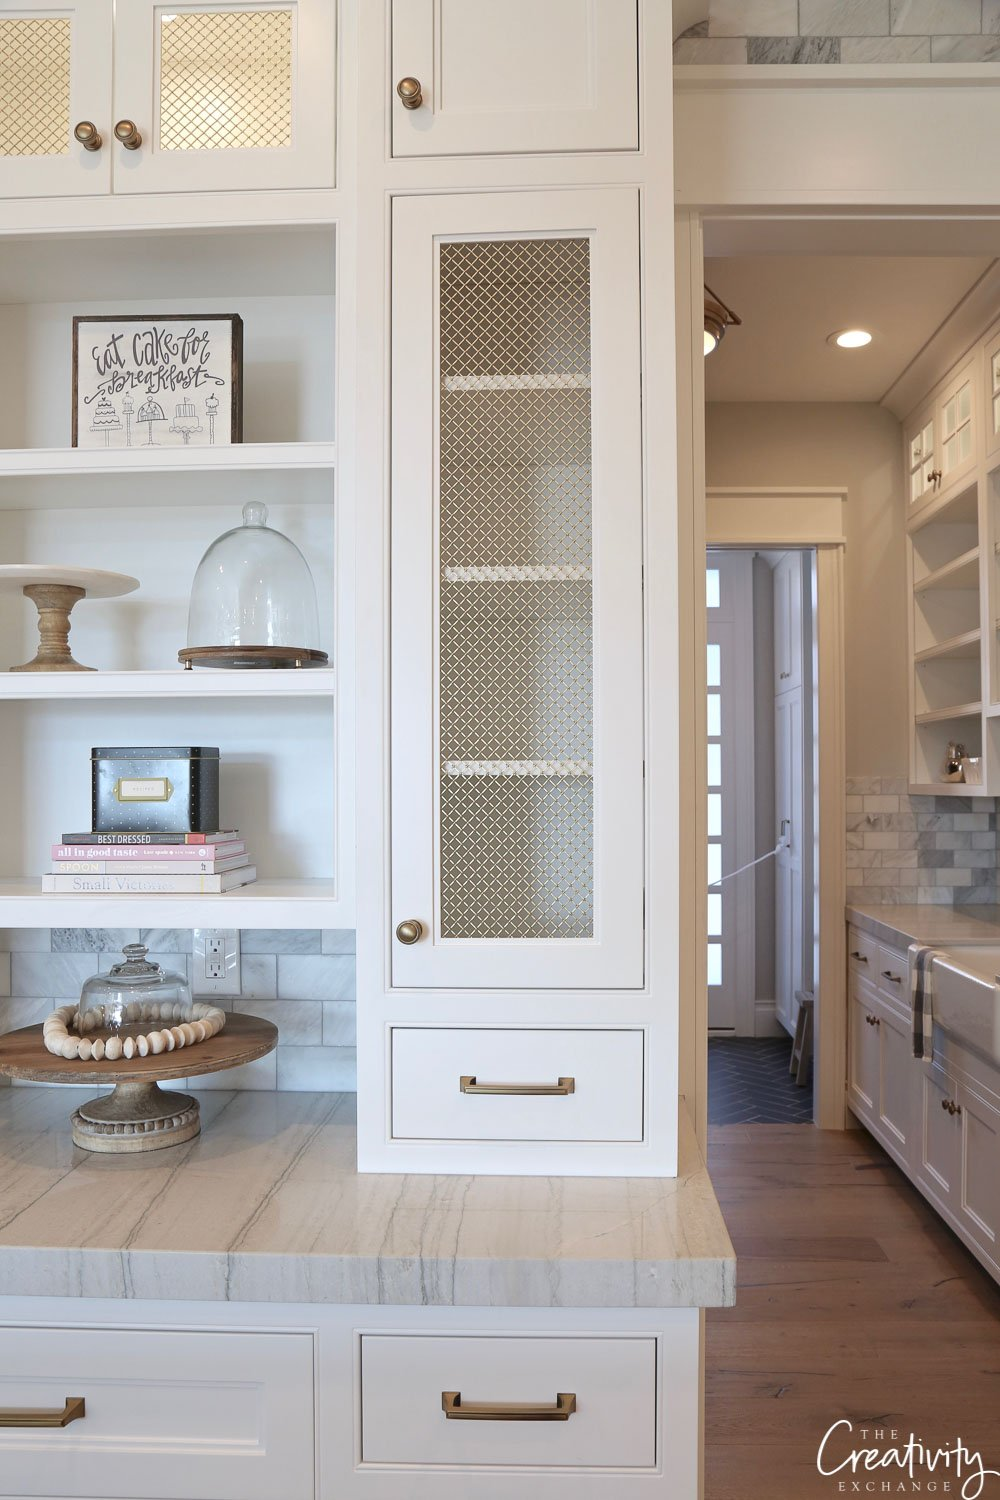 Kitchen storage and shelving for dish ware